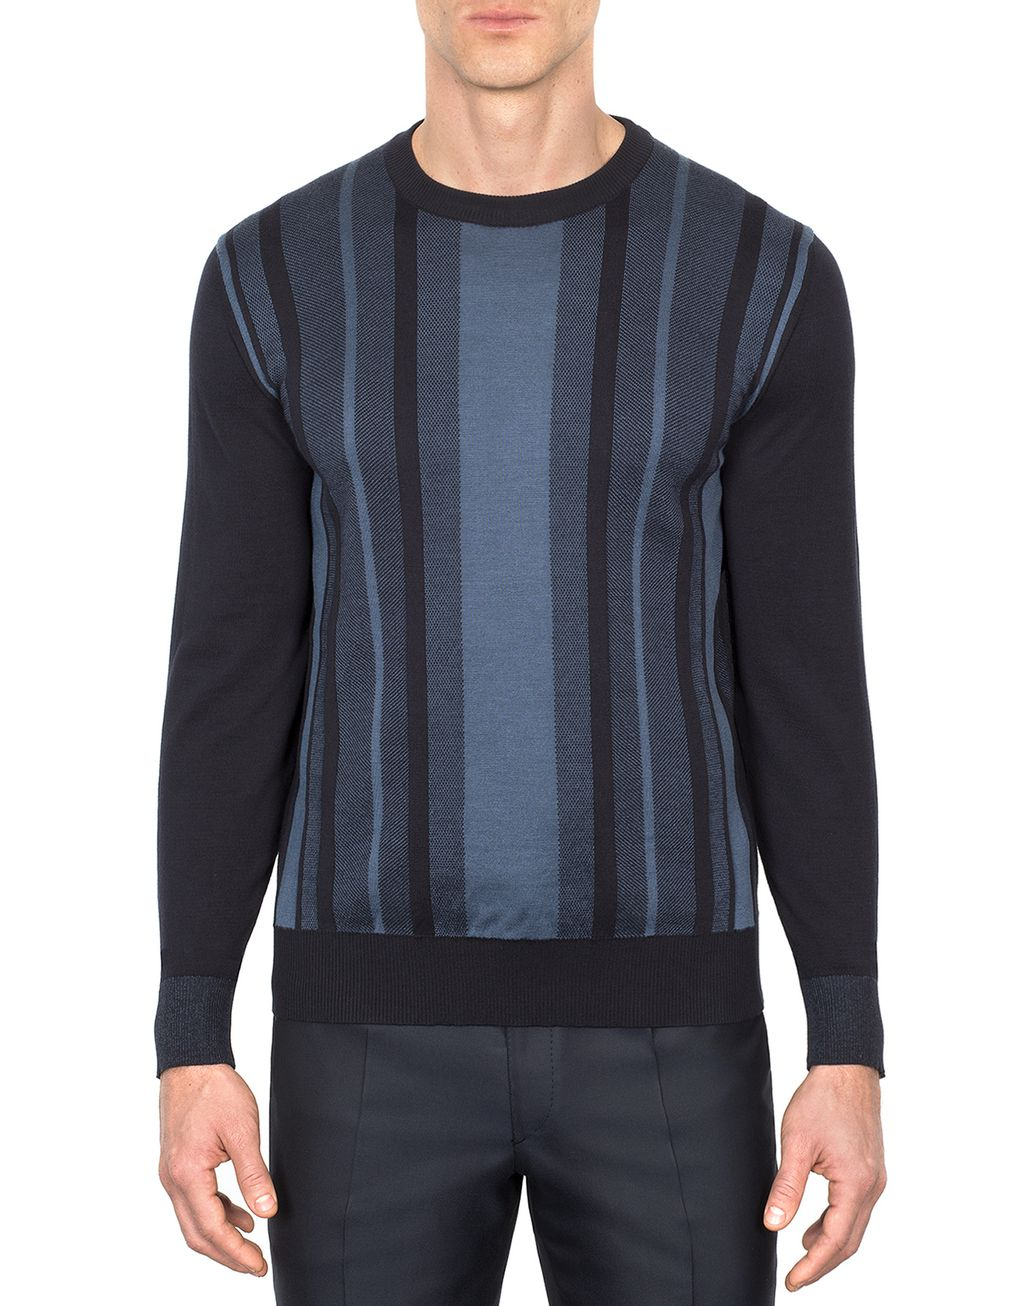 BRIONI Navy-Blue Cotton and Silk Striped Sweater with Two-Tone Trim Knitwear Man r